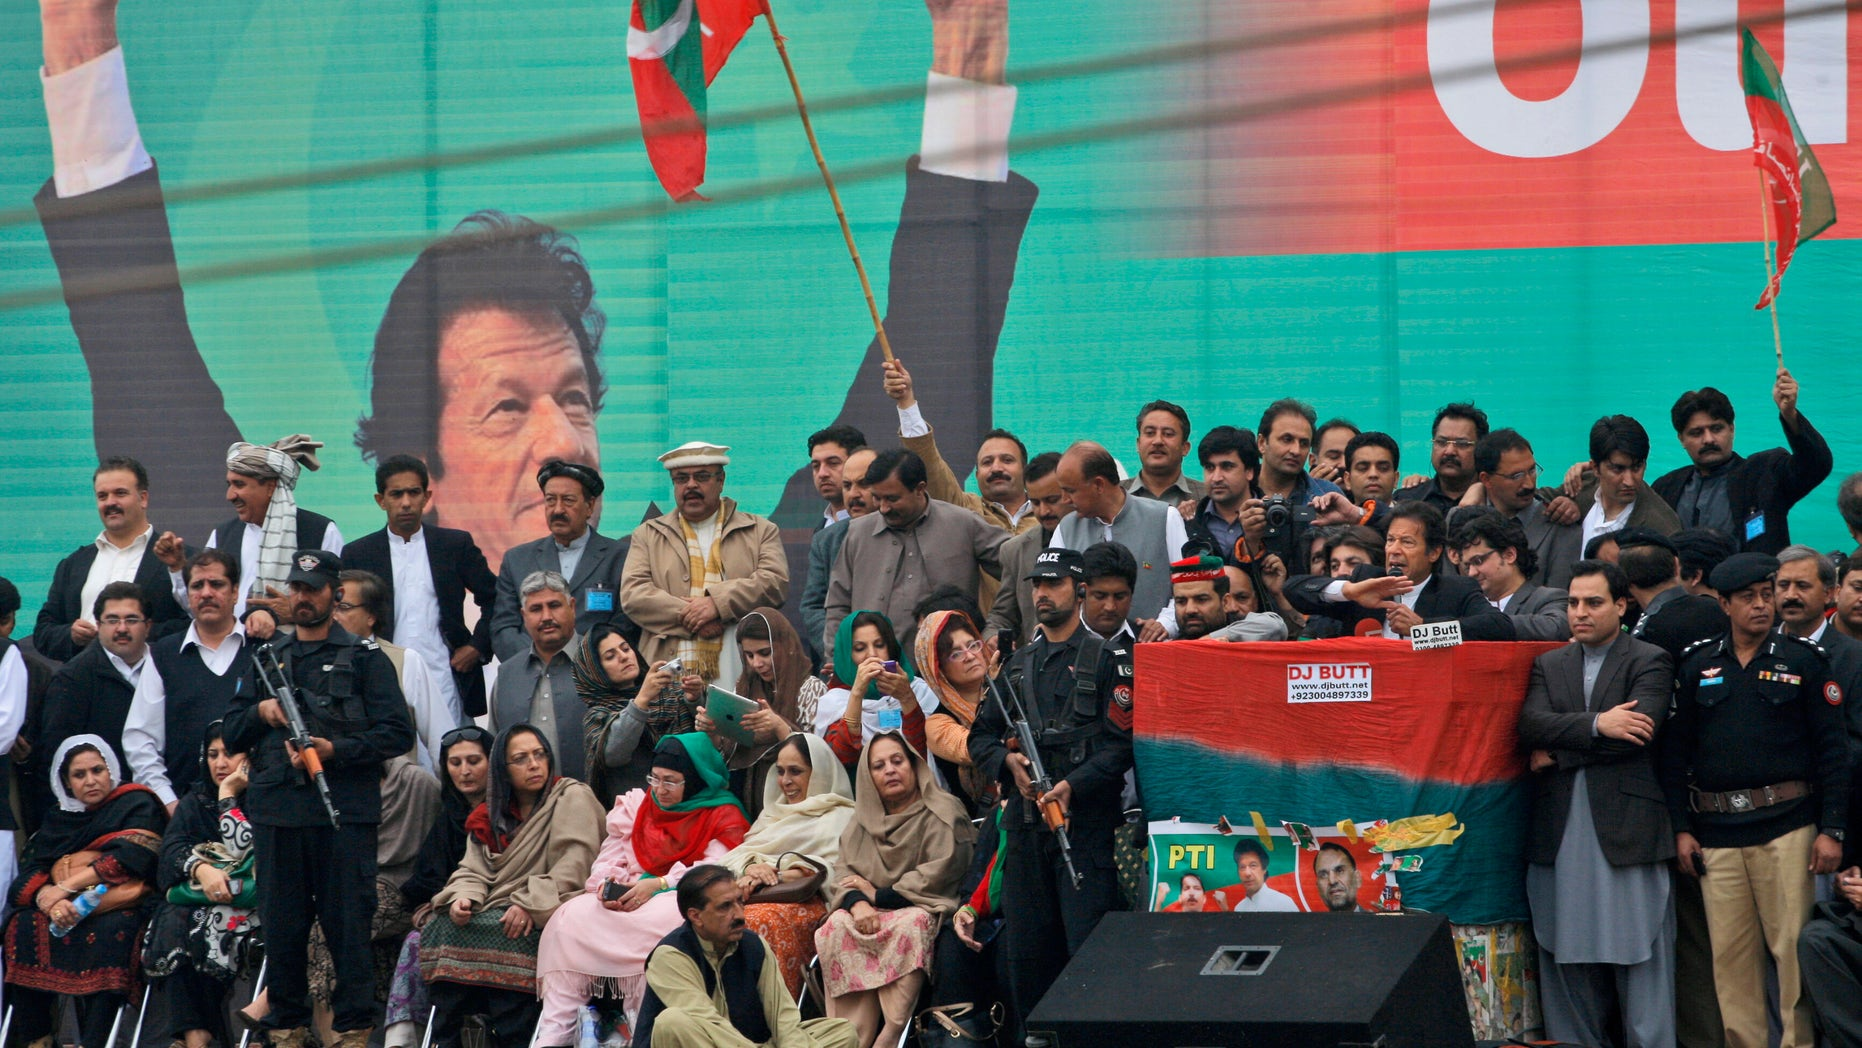 Nov. 23, 2013: Pakistan's cricketer-turned politician Imran Khan, leader of Pakistan Tehreek-e-Insaf party, with a microphone at center right, surrounded by security men and party members, delivers a speech to his supporters during a protest against U.S. drone strikes in Pakistan, in Peshawar, Pakistan. Thousands of people protesting U.S. drone strikes blocked a road in northwest Pakistan on Saturday used to truck NATO troop supplies and equipment in and out of Afghanistan, the latest sign of rising tension caused by the attacks.